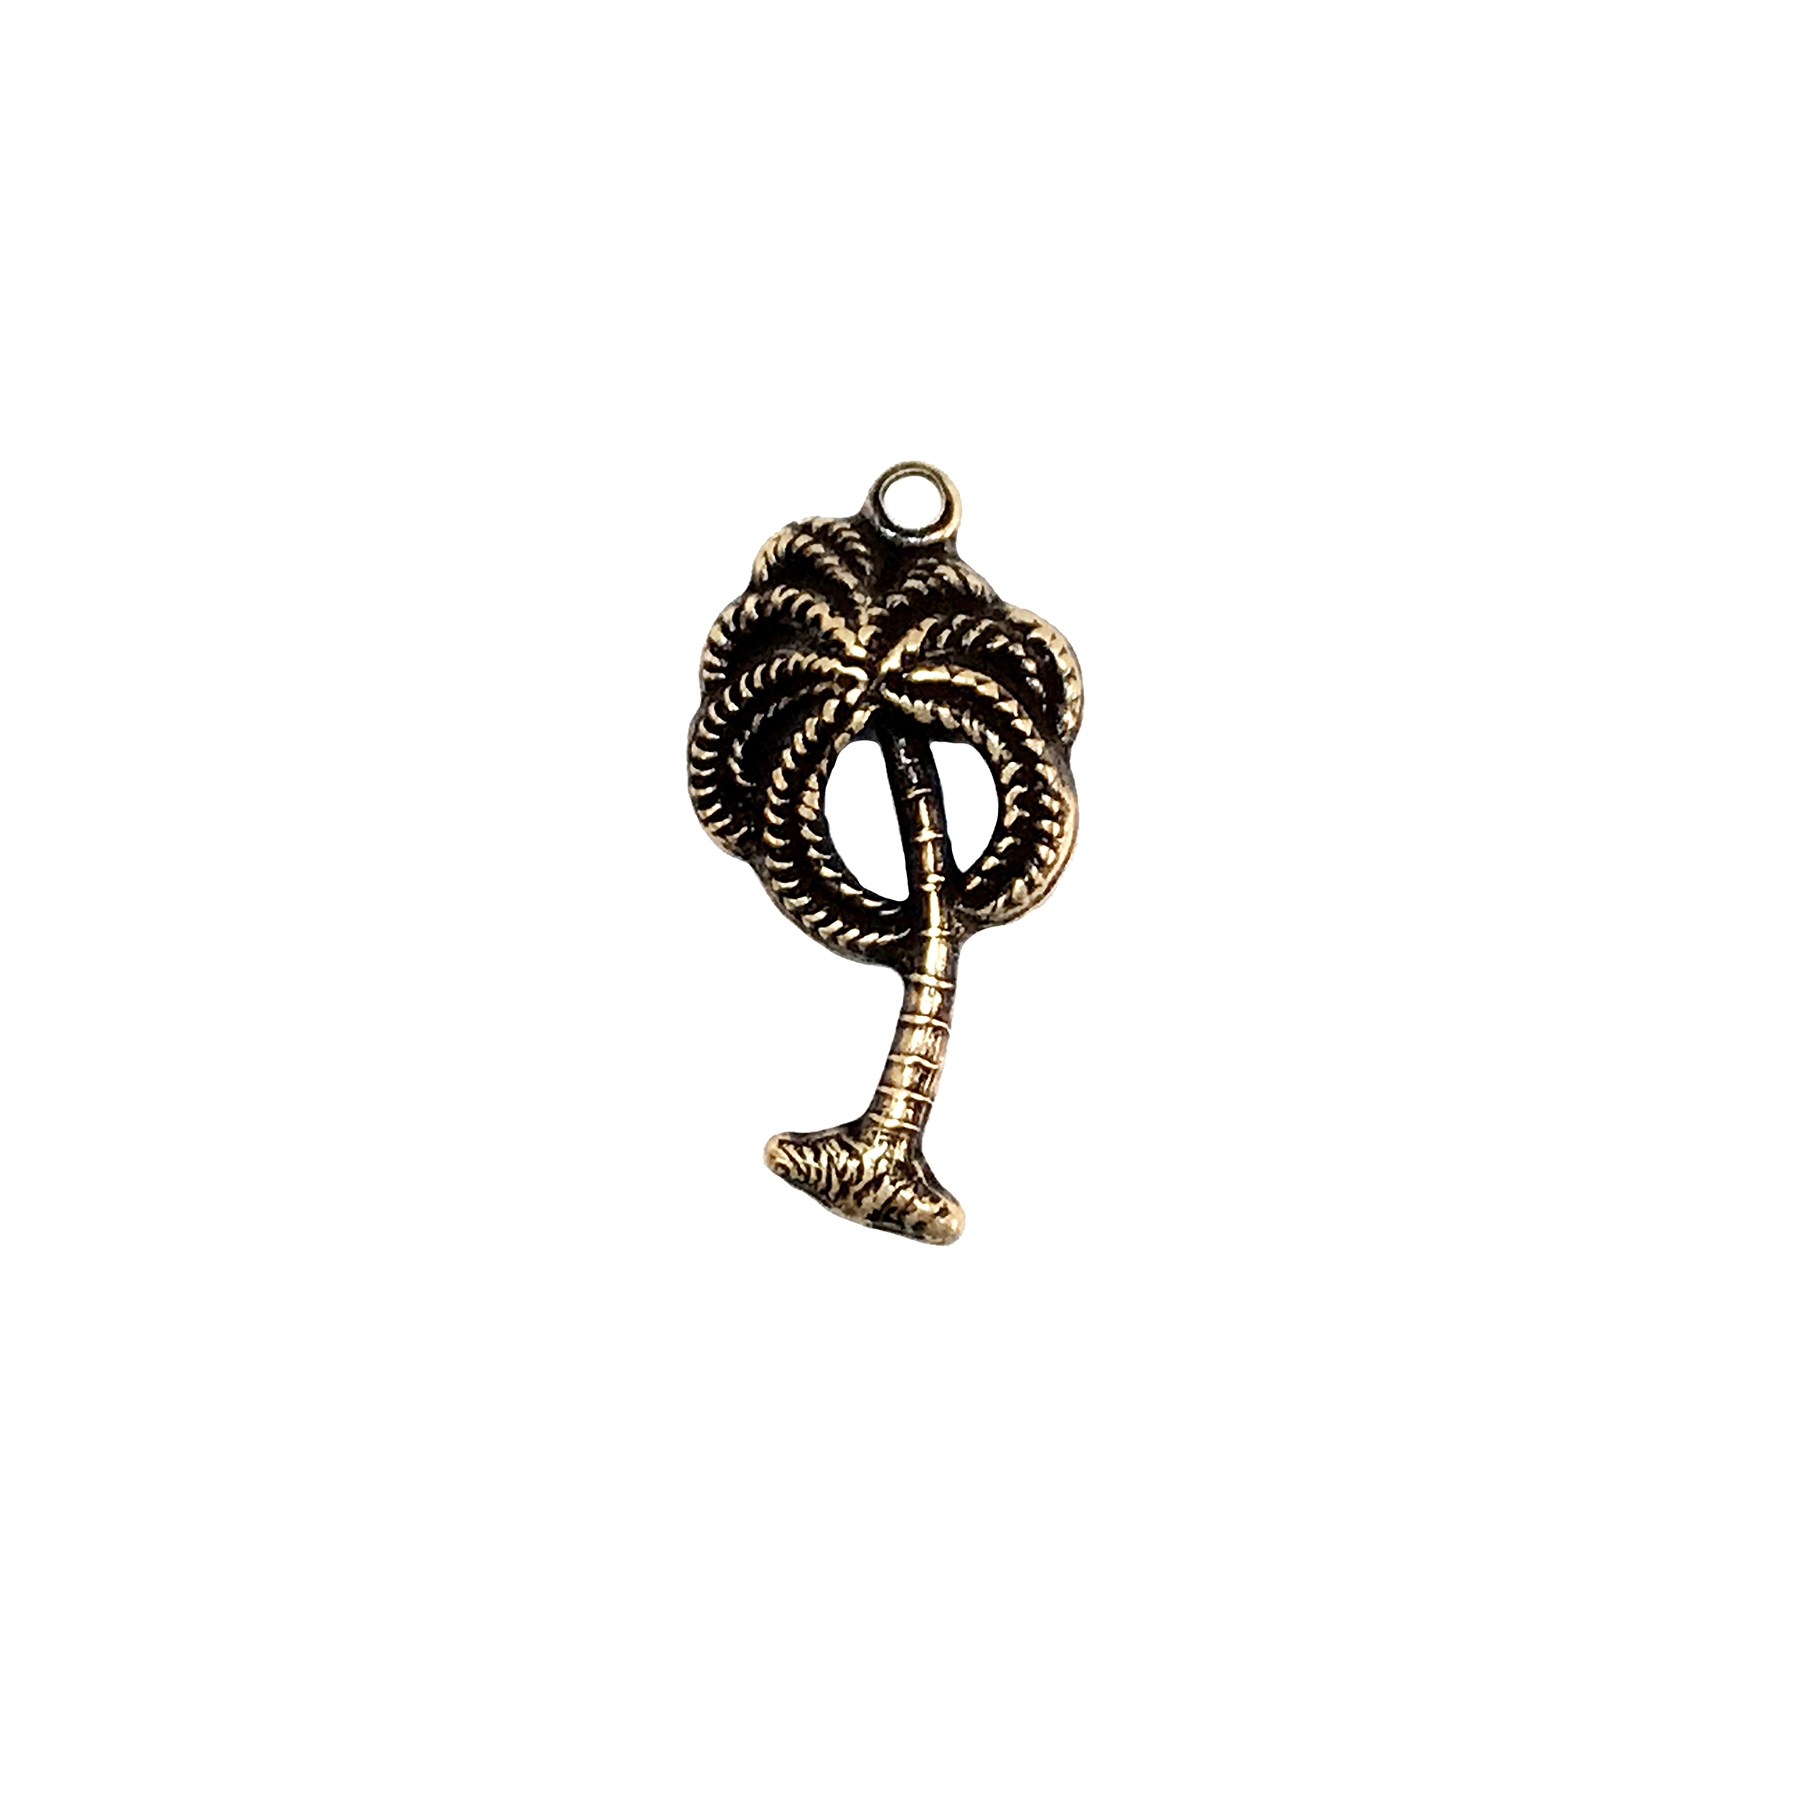 brass charm, palm tree charms, jewelry making, 04476, brass ox, antique brass, brass jewelry parts, vintage jewelry supplies, beach jewelry, US made jewelry, nickel free jewelry, B'sue Boutiques,